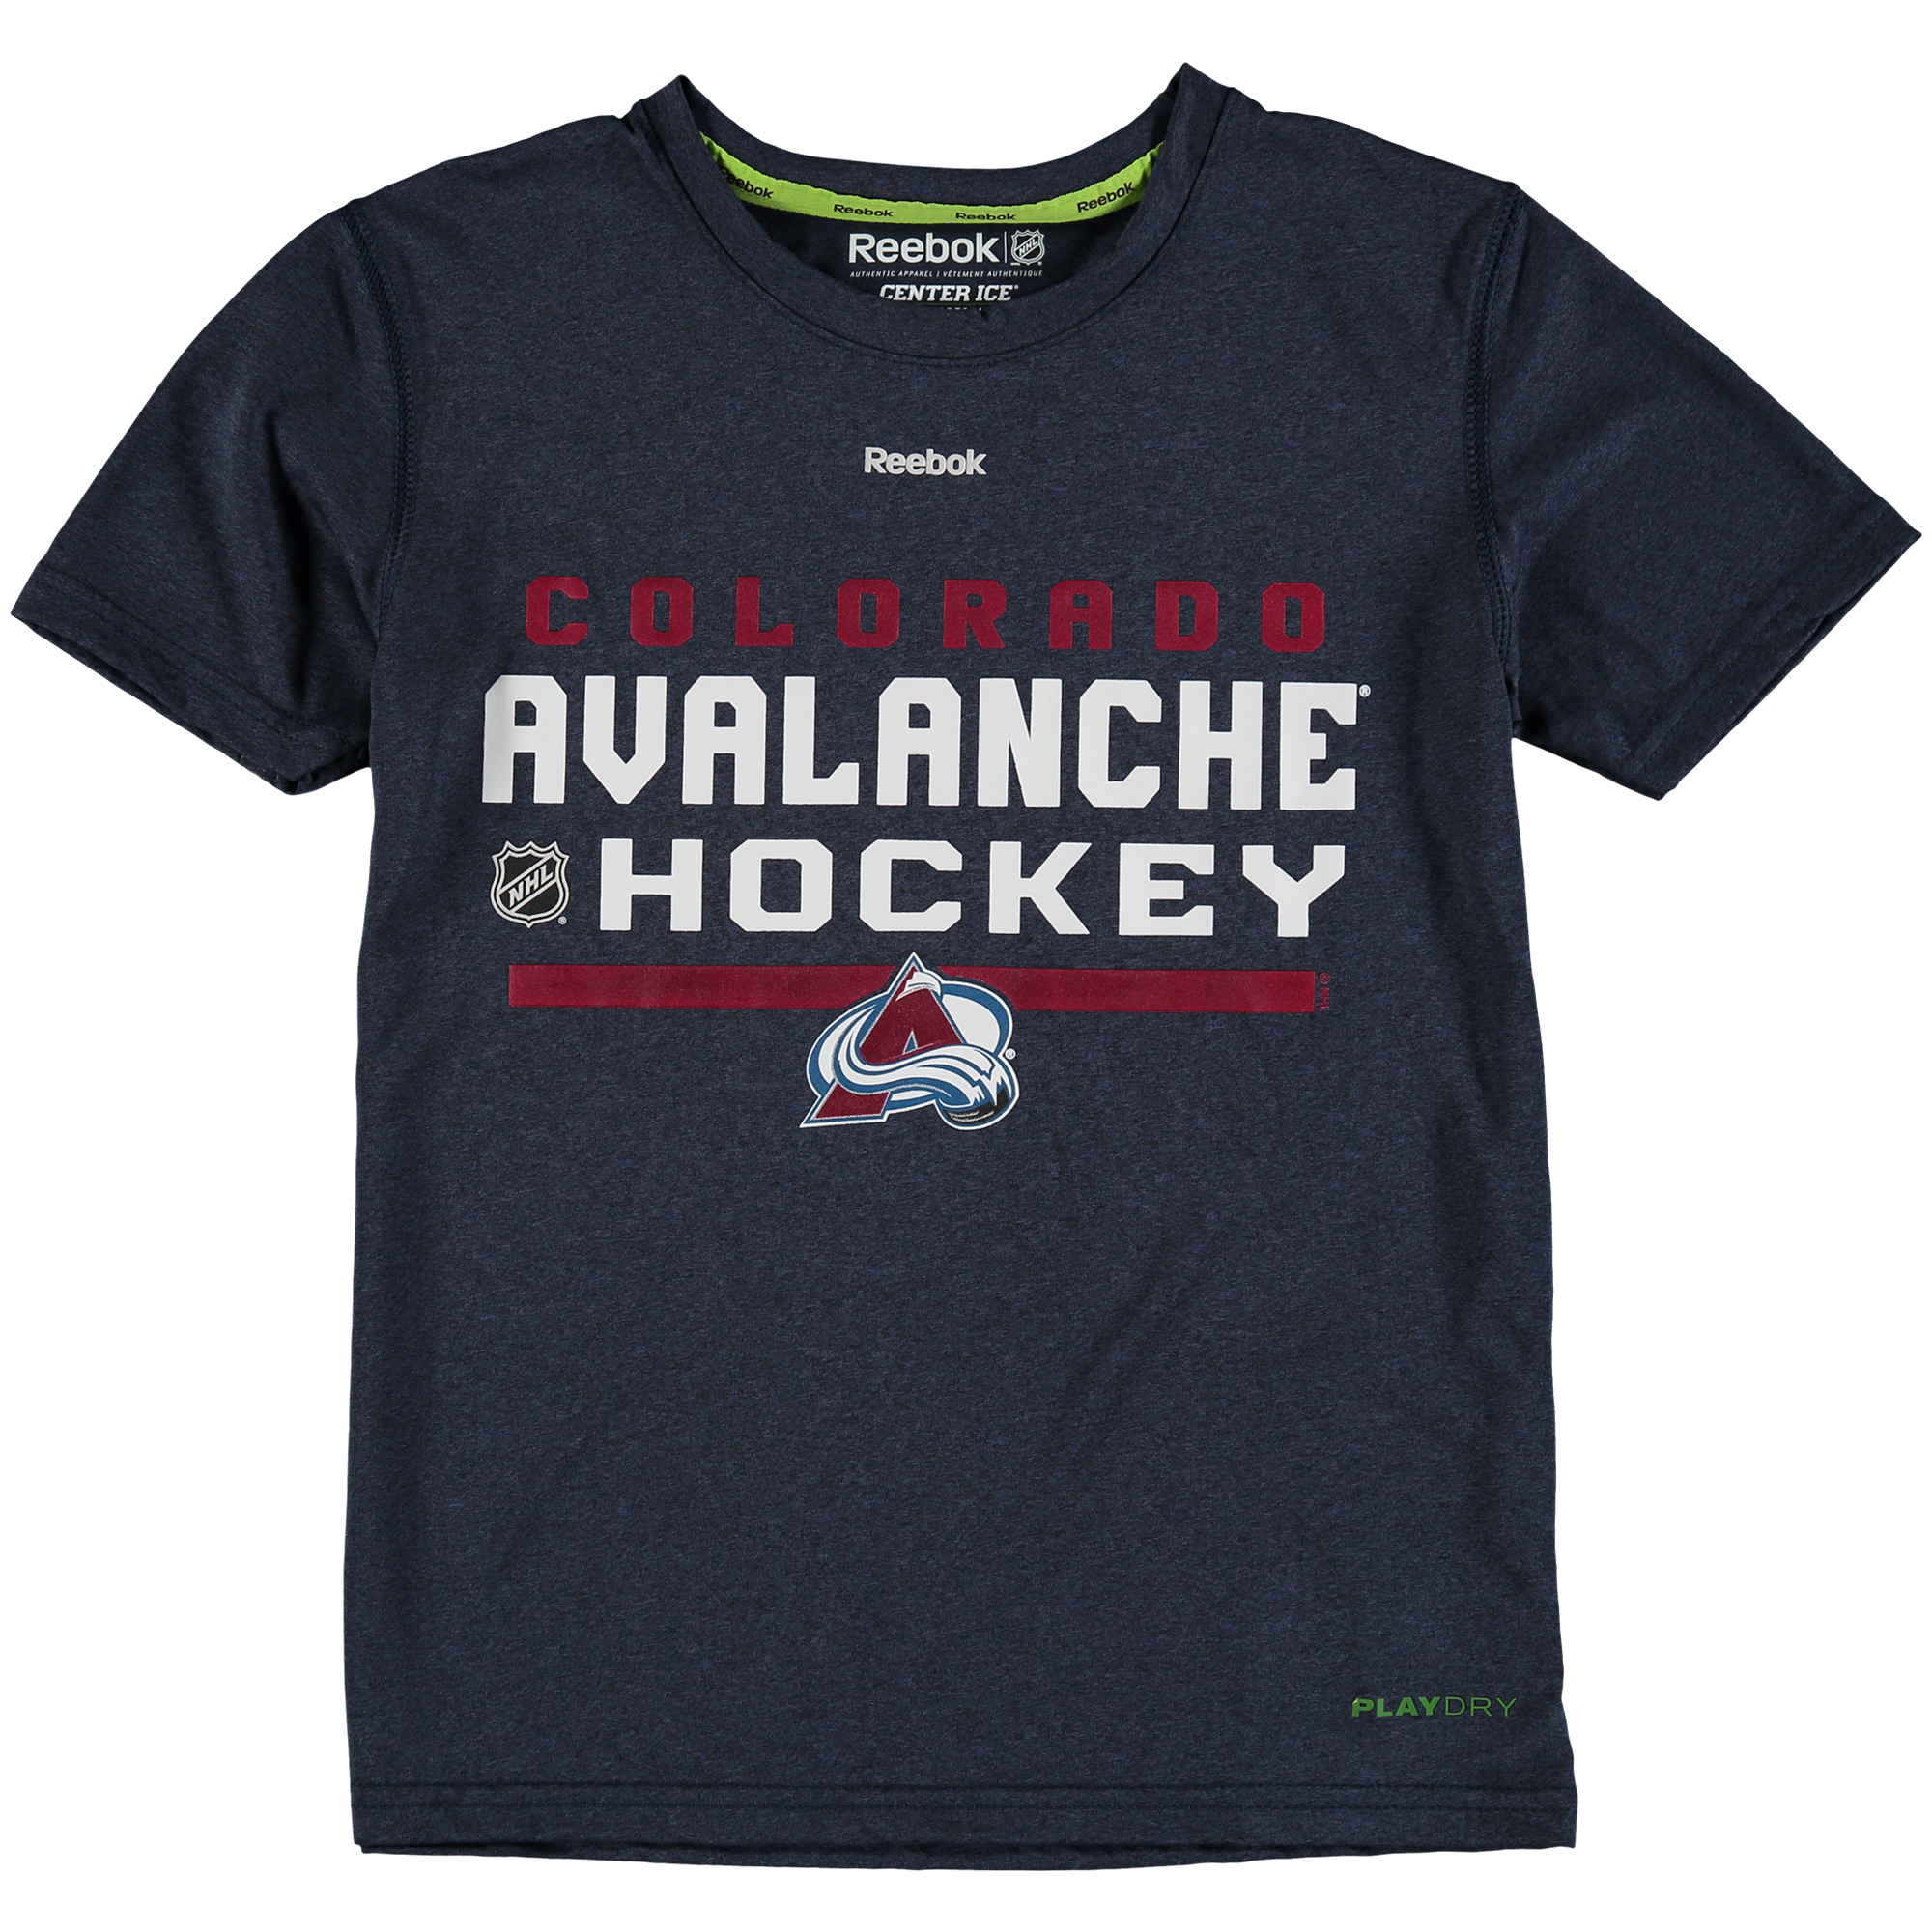 Colorado Avalanche Reebok Youth Authentic Freeze PlayDry T-Shirt - Navy